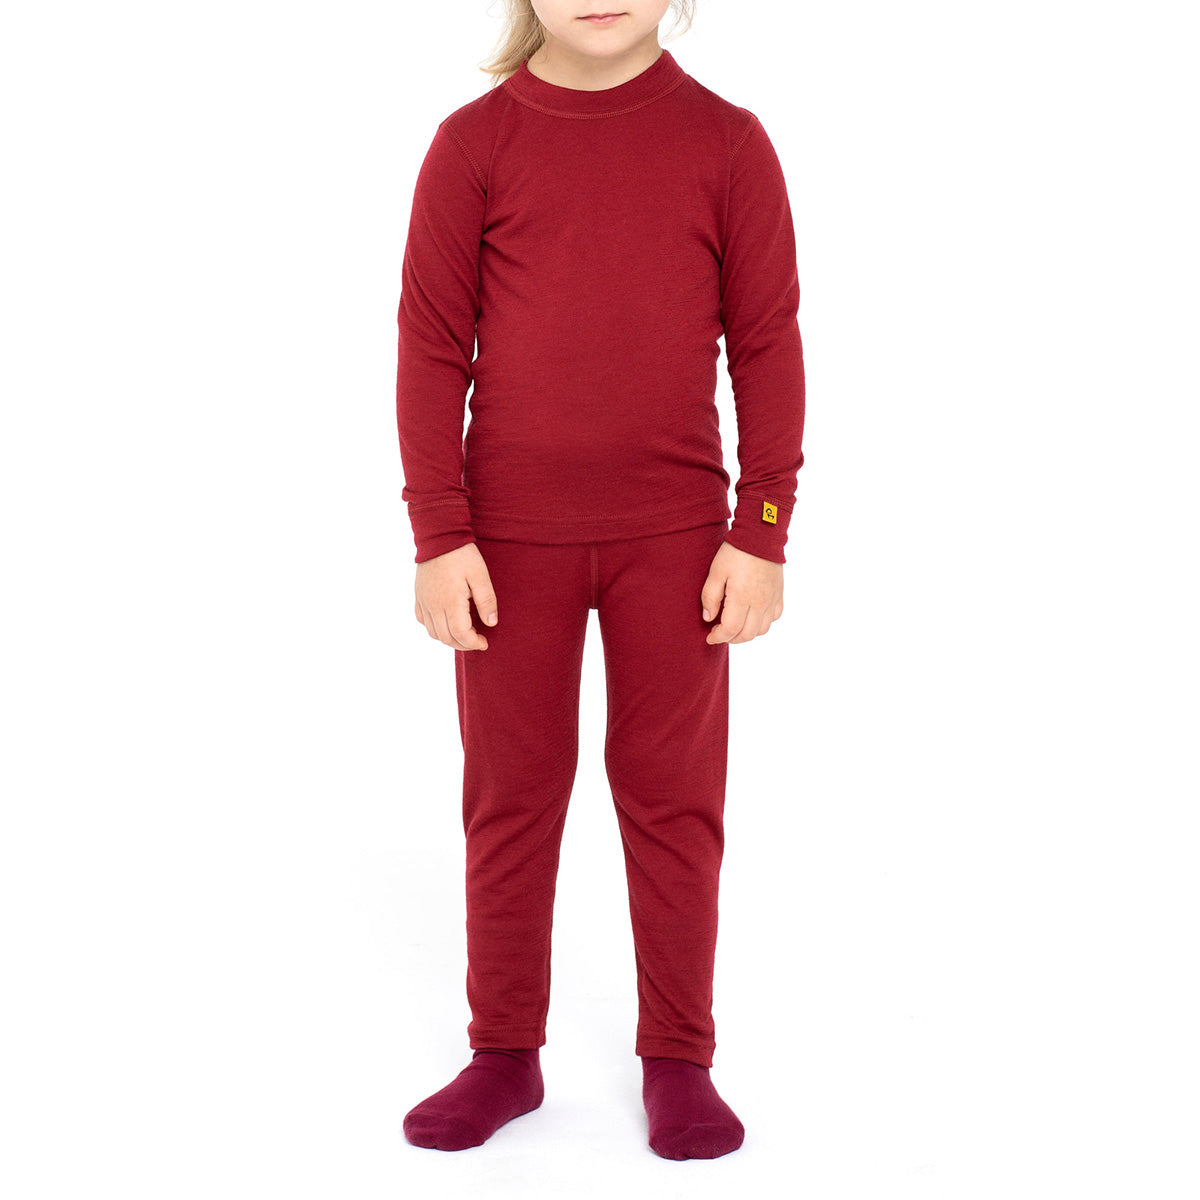 Kids' Long Sleeve Set 160gsm Merino Wool Royal Cherry